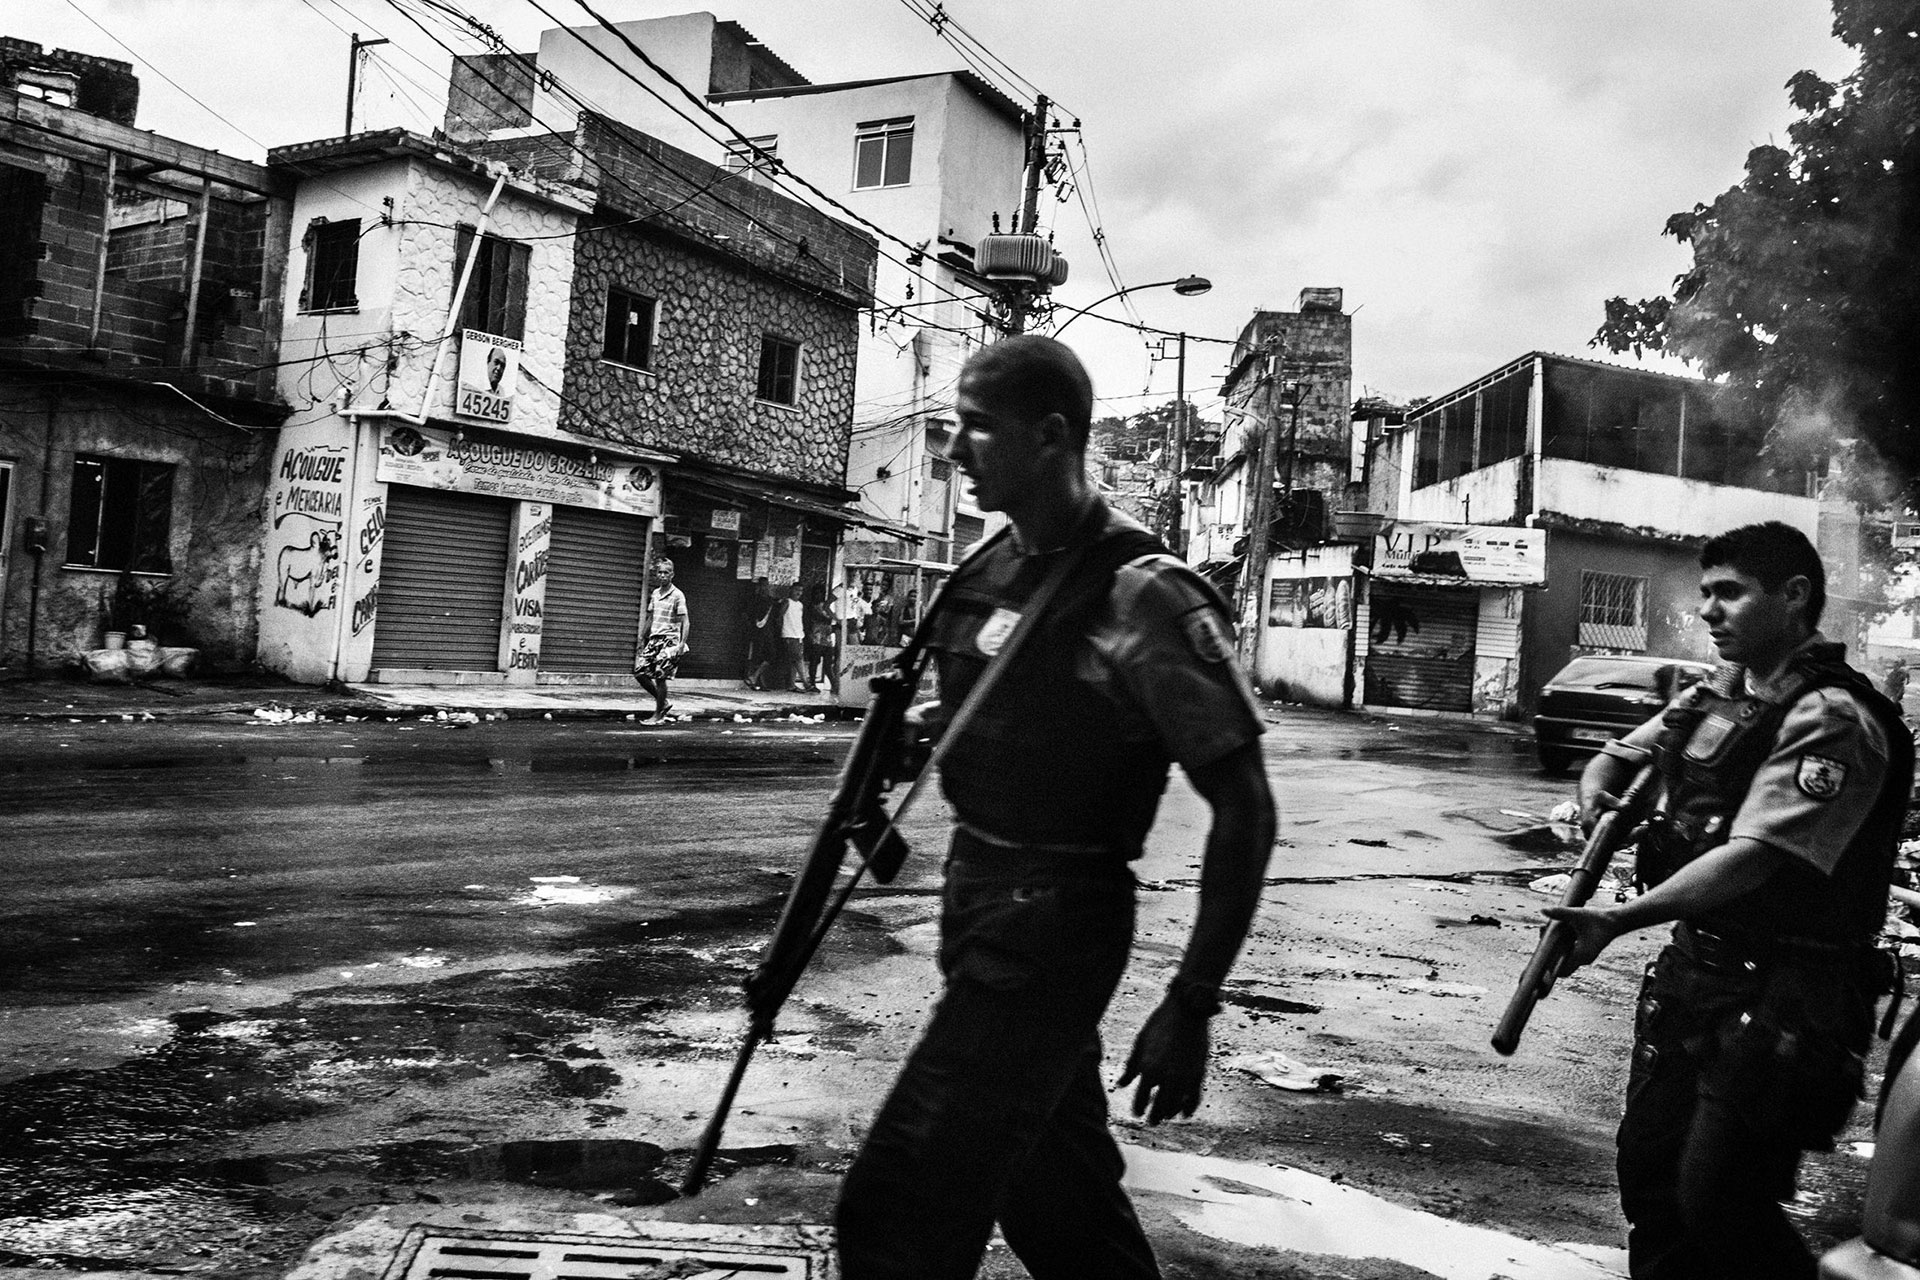 world-press-photo-2016-sebastian-liste-periodismo-ciudadano-favelas-brasil